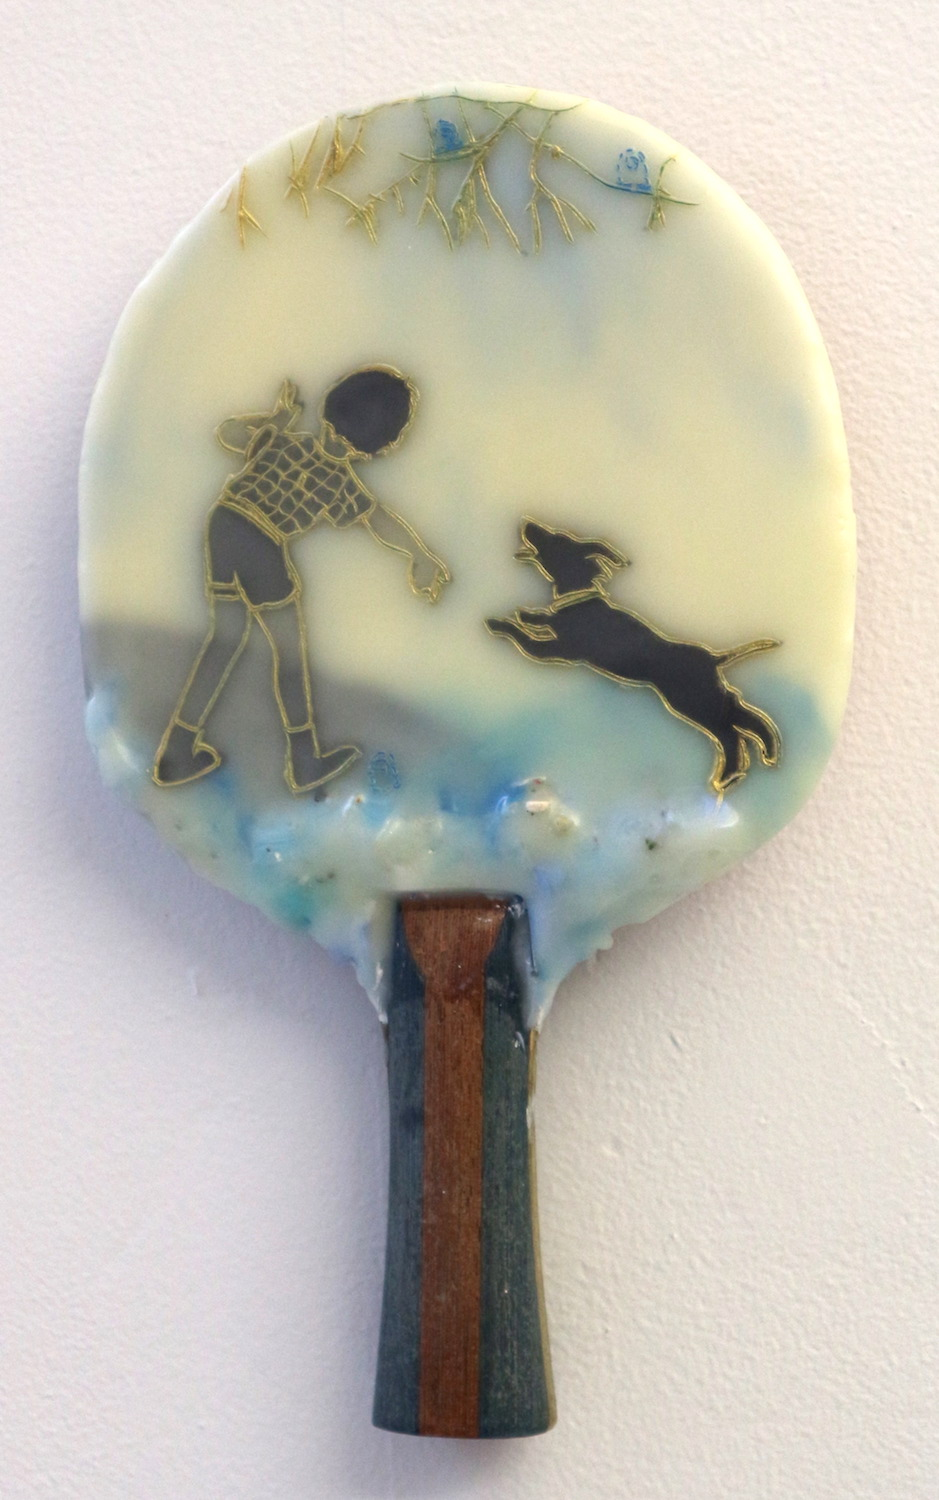 #9 Cecile Chong  Well Trained  Encaustic and mixed media on ping-pong paddle 10 x 6 in, 2017